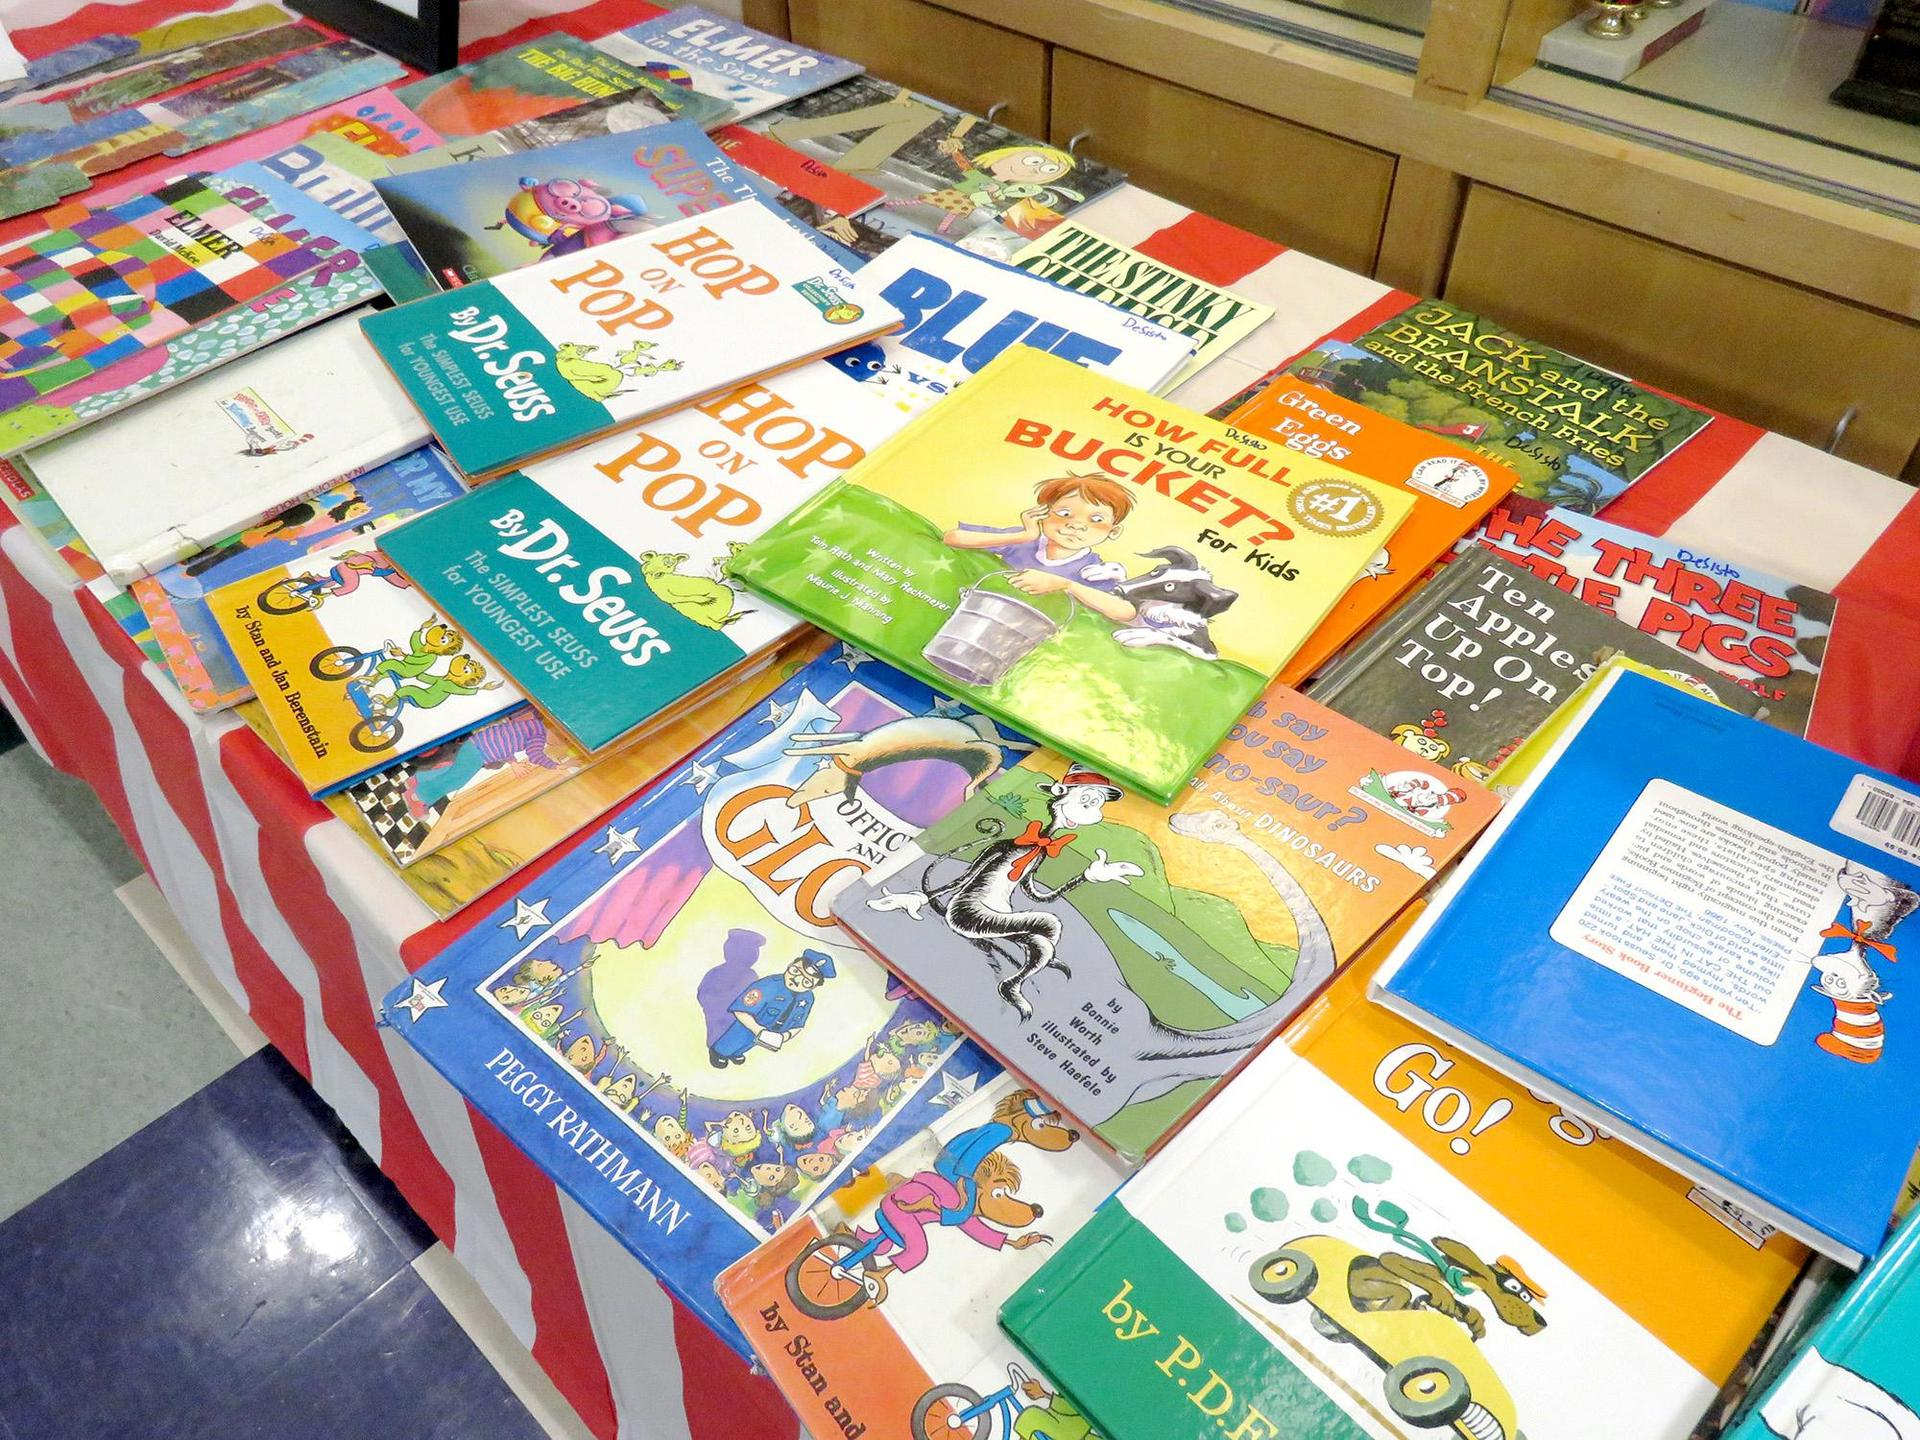 A table filled covered with children's books